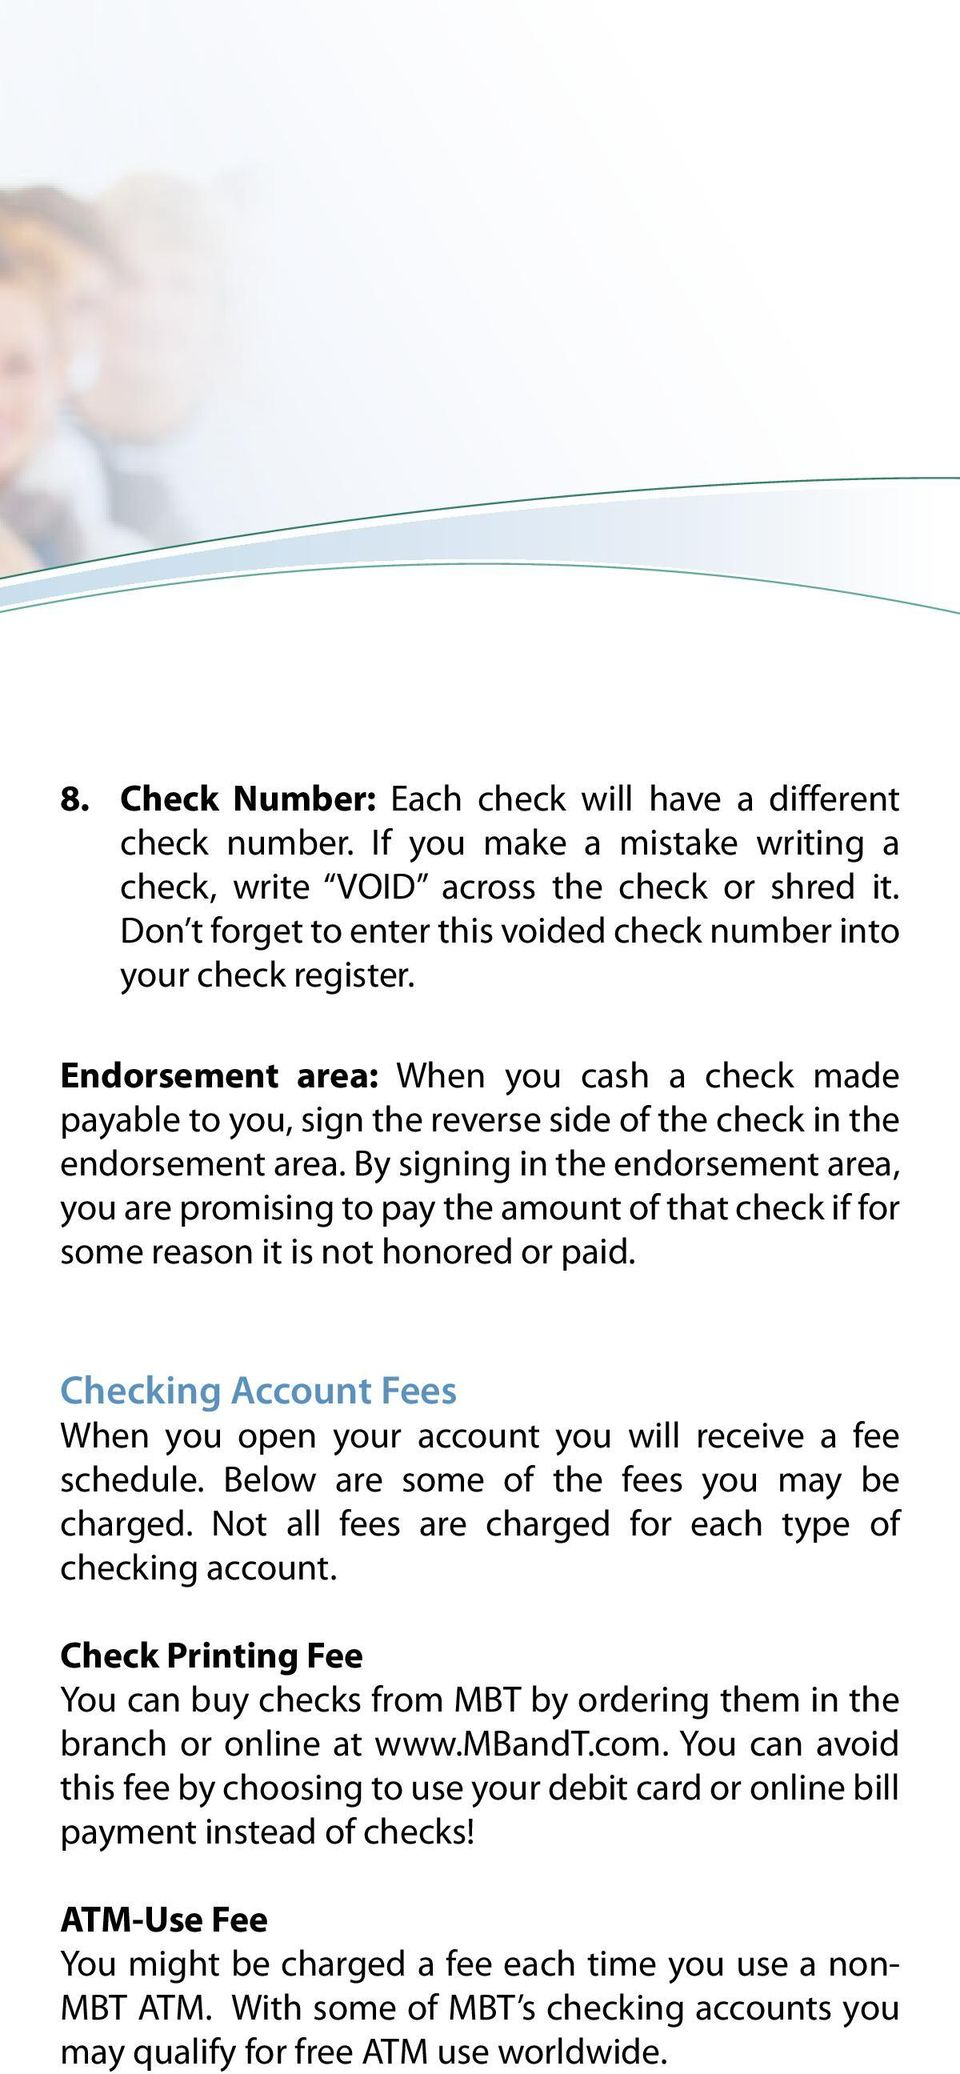 By signing in the endorsement area, you are promising to pay the amount of that check if for some reason it is not honored or paid.